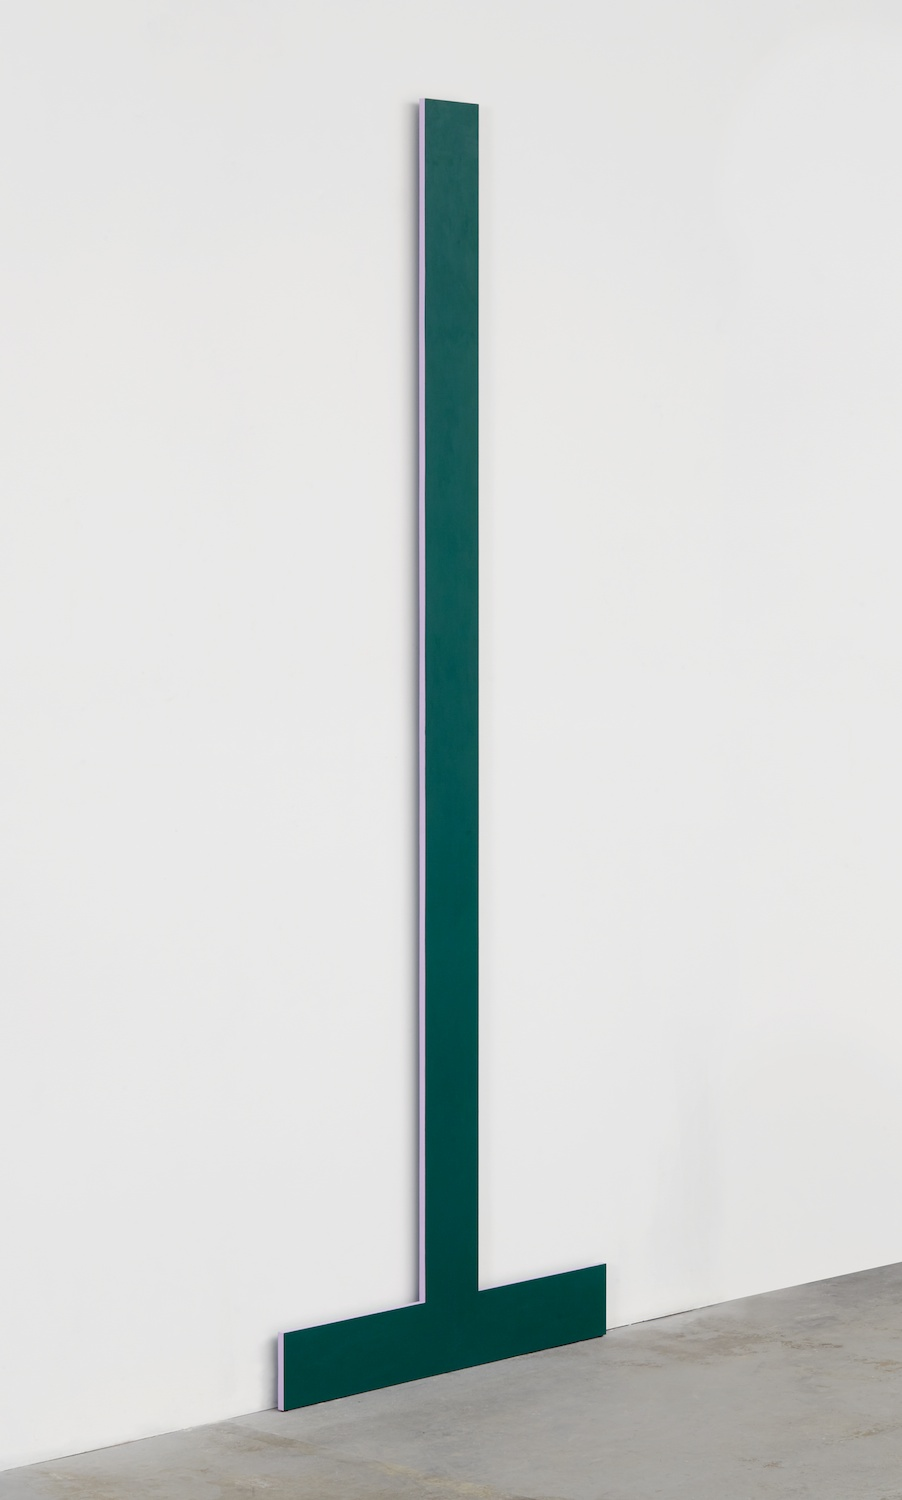 Lisa Williamson  Bookend  2014 Acrylic on aluminum 84h x 30w x 1d in LW145